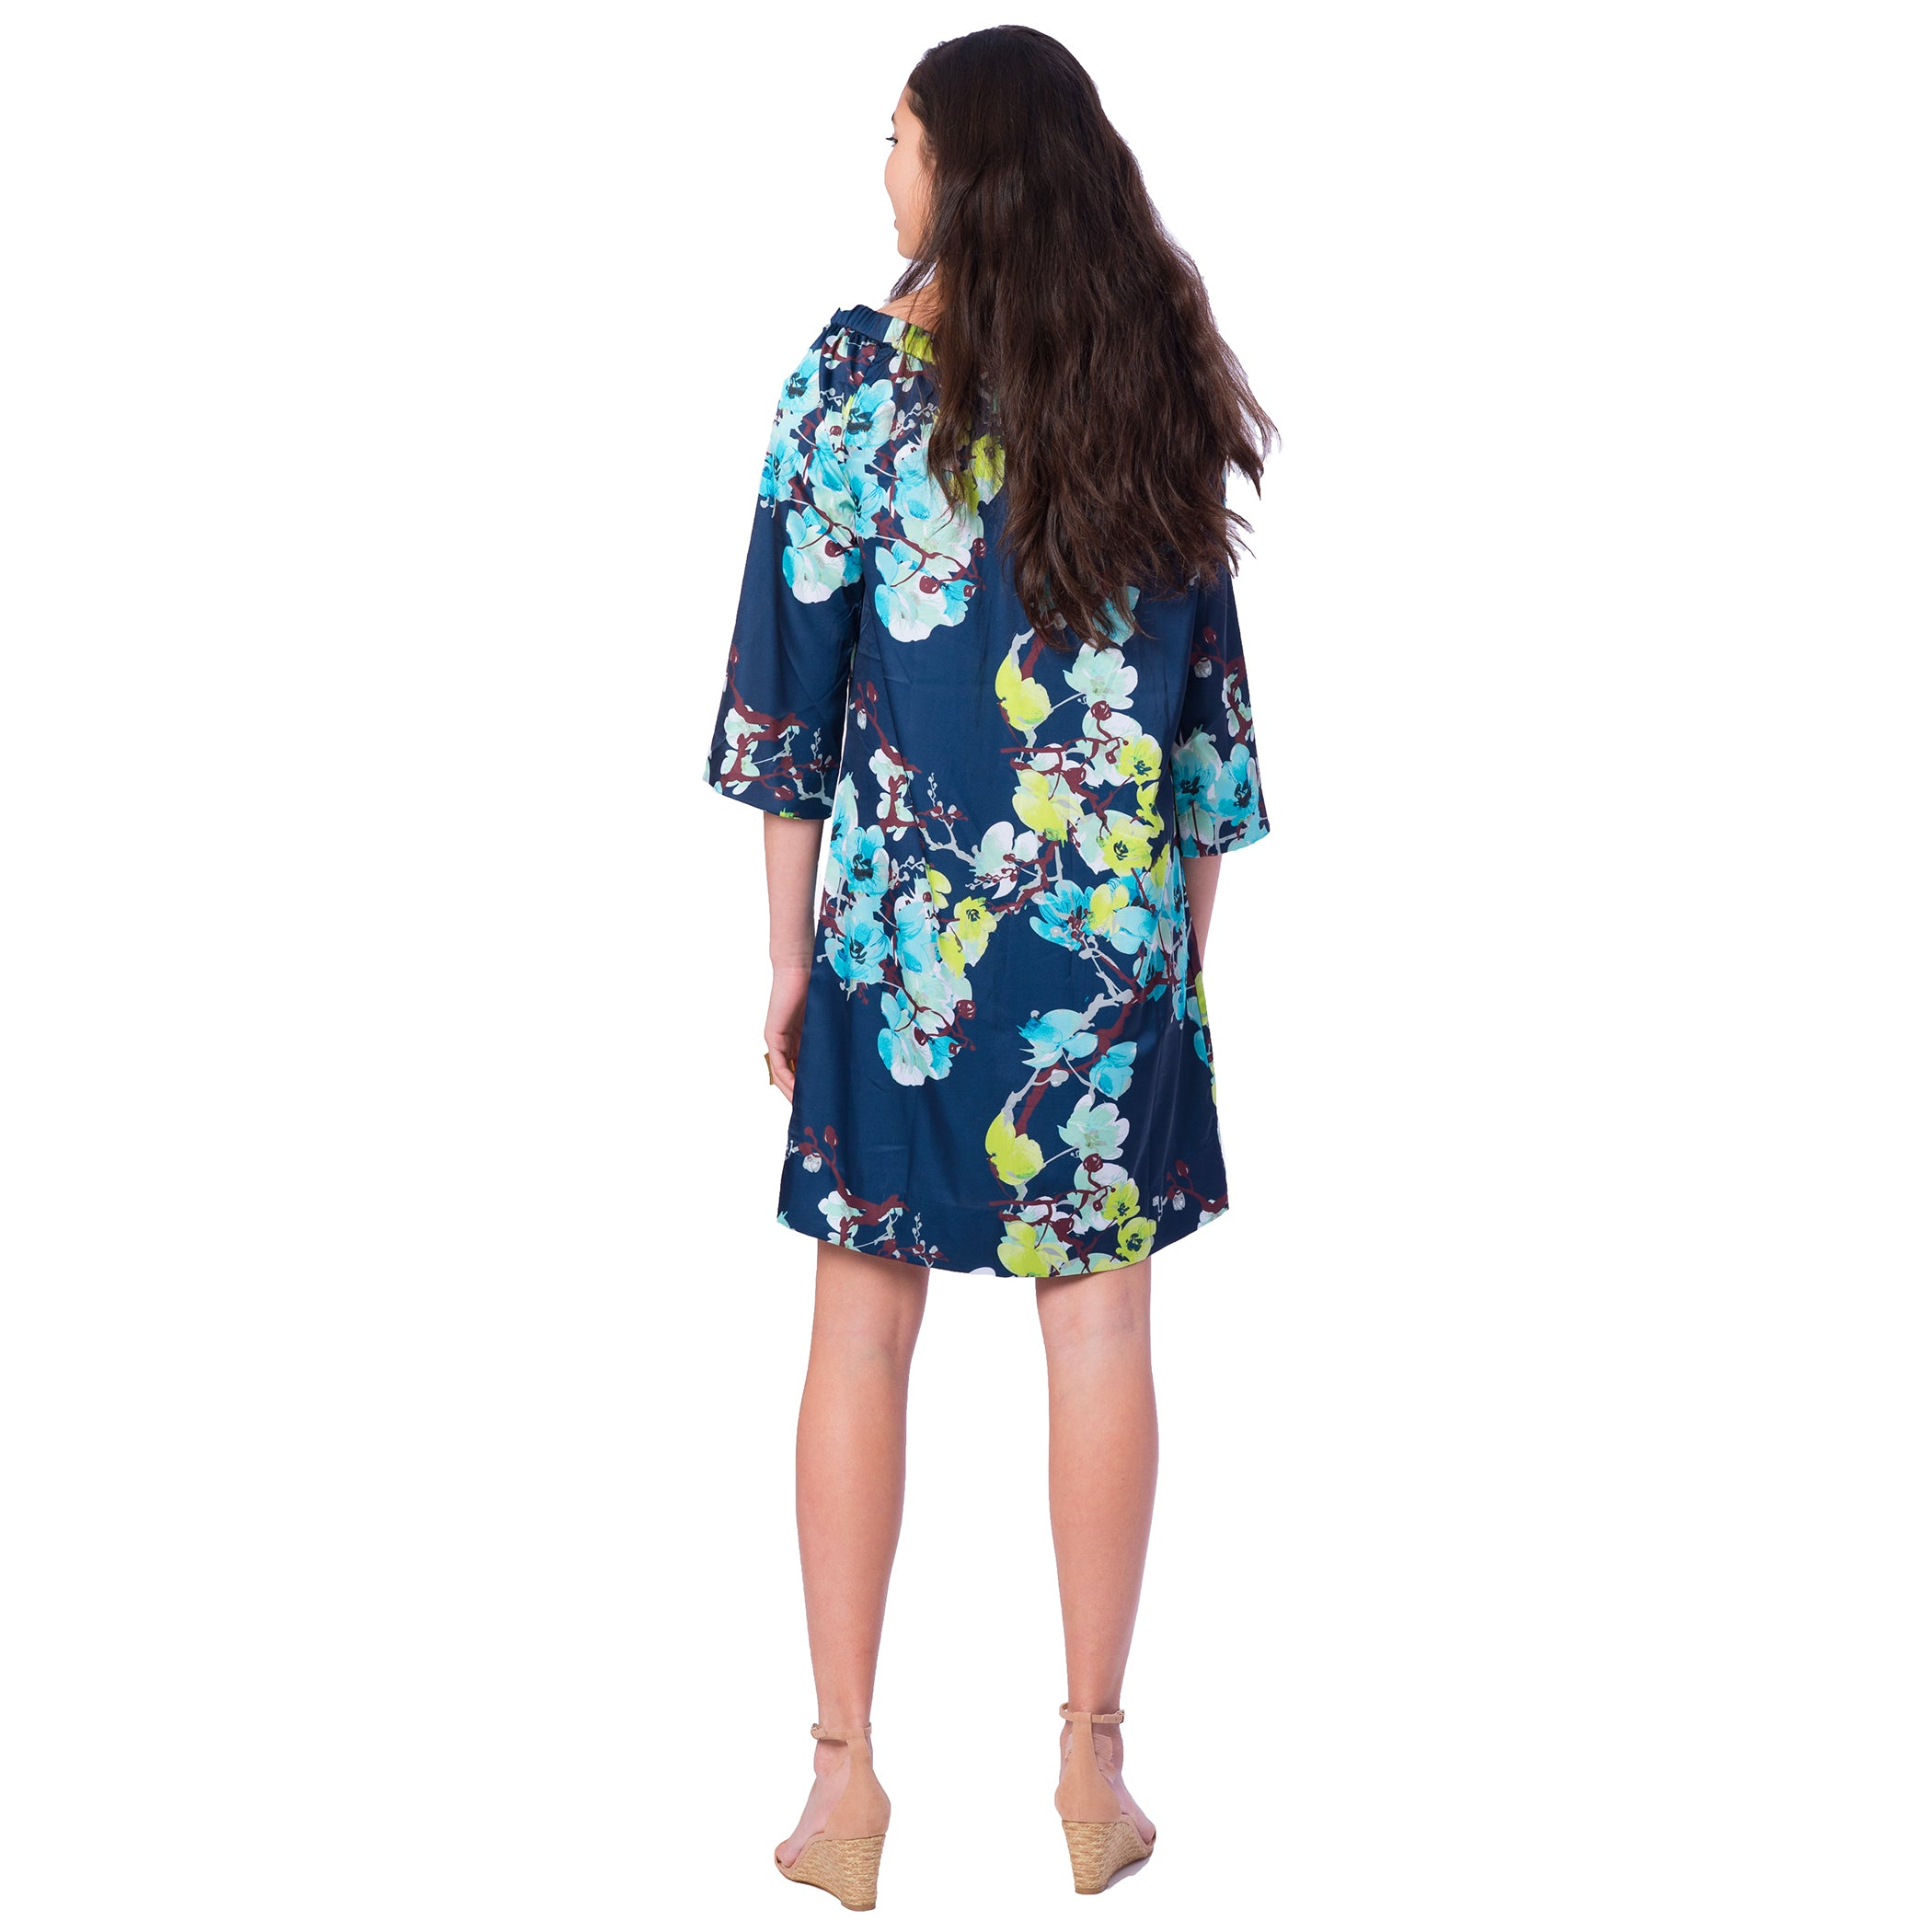 Bridget Dress Navy Branch Floral - Elizabeth Ackerman New York